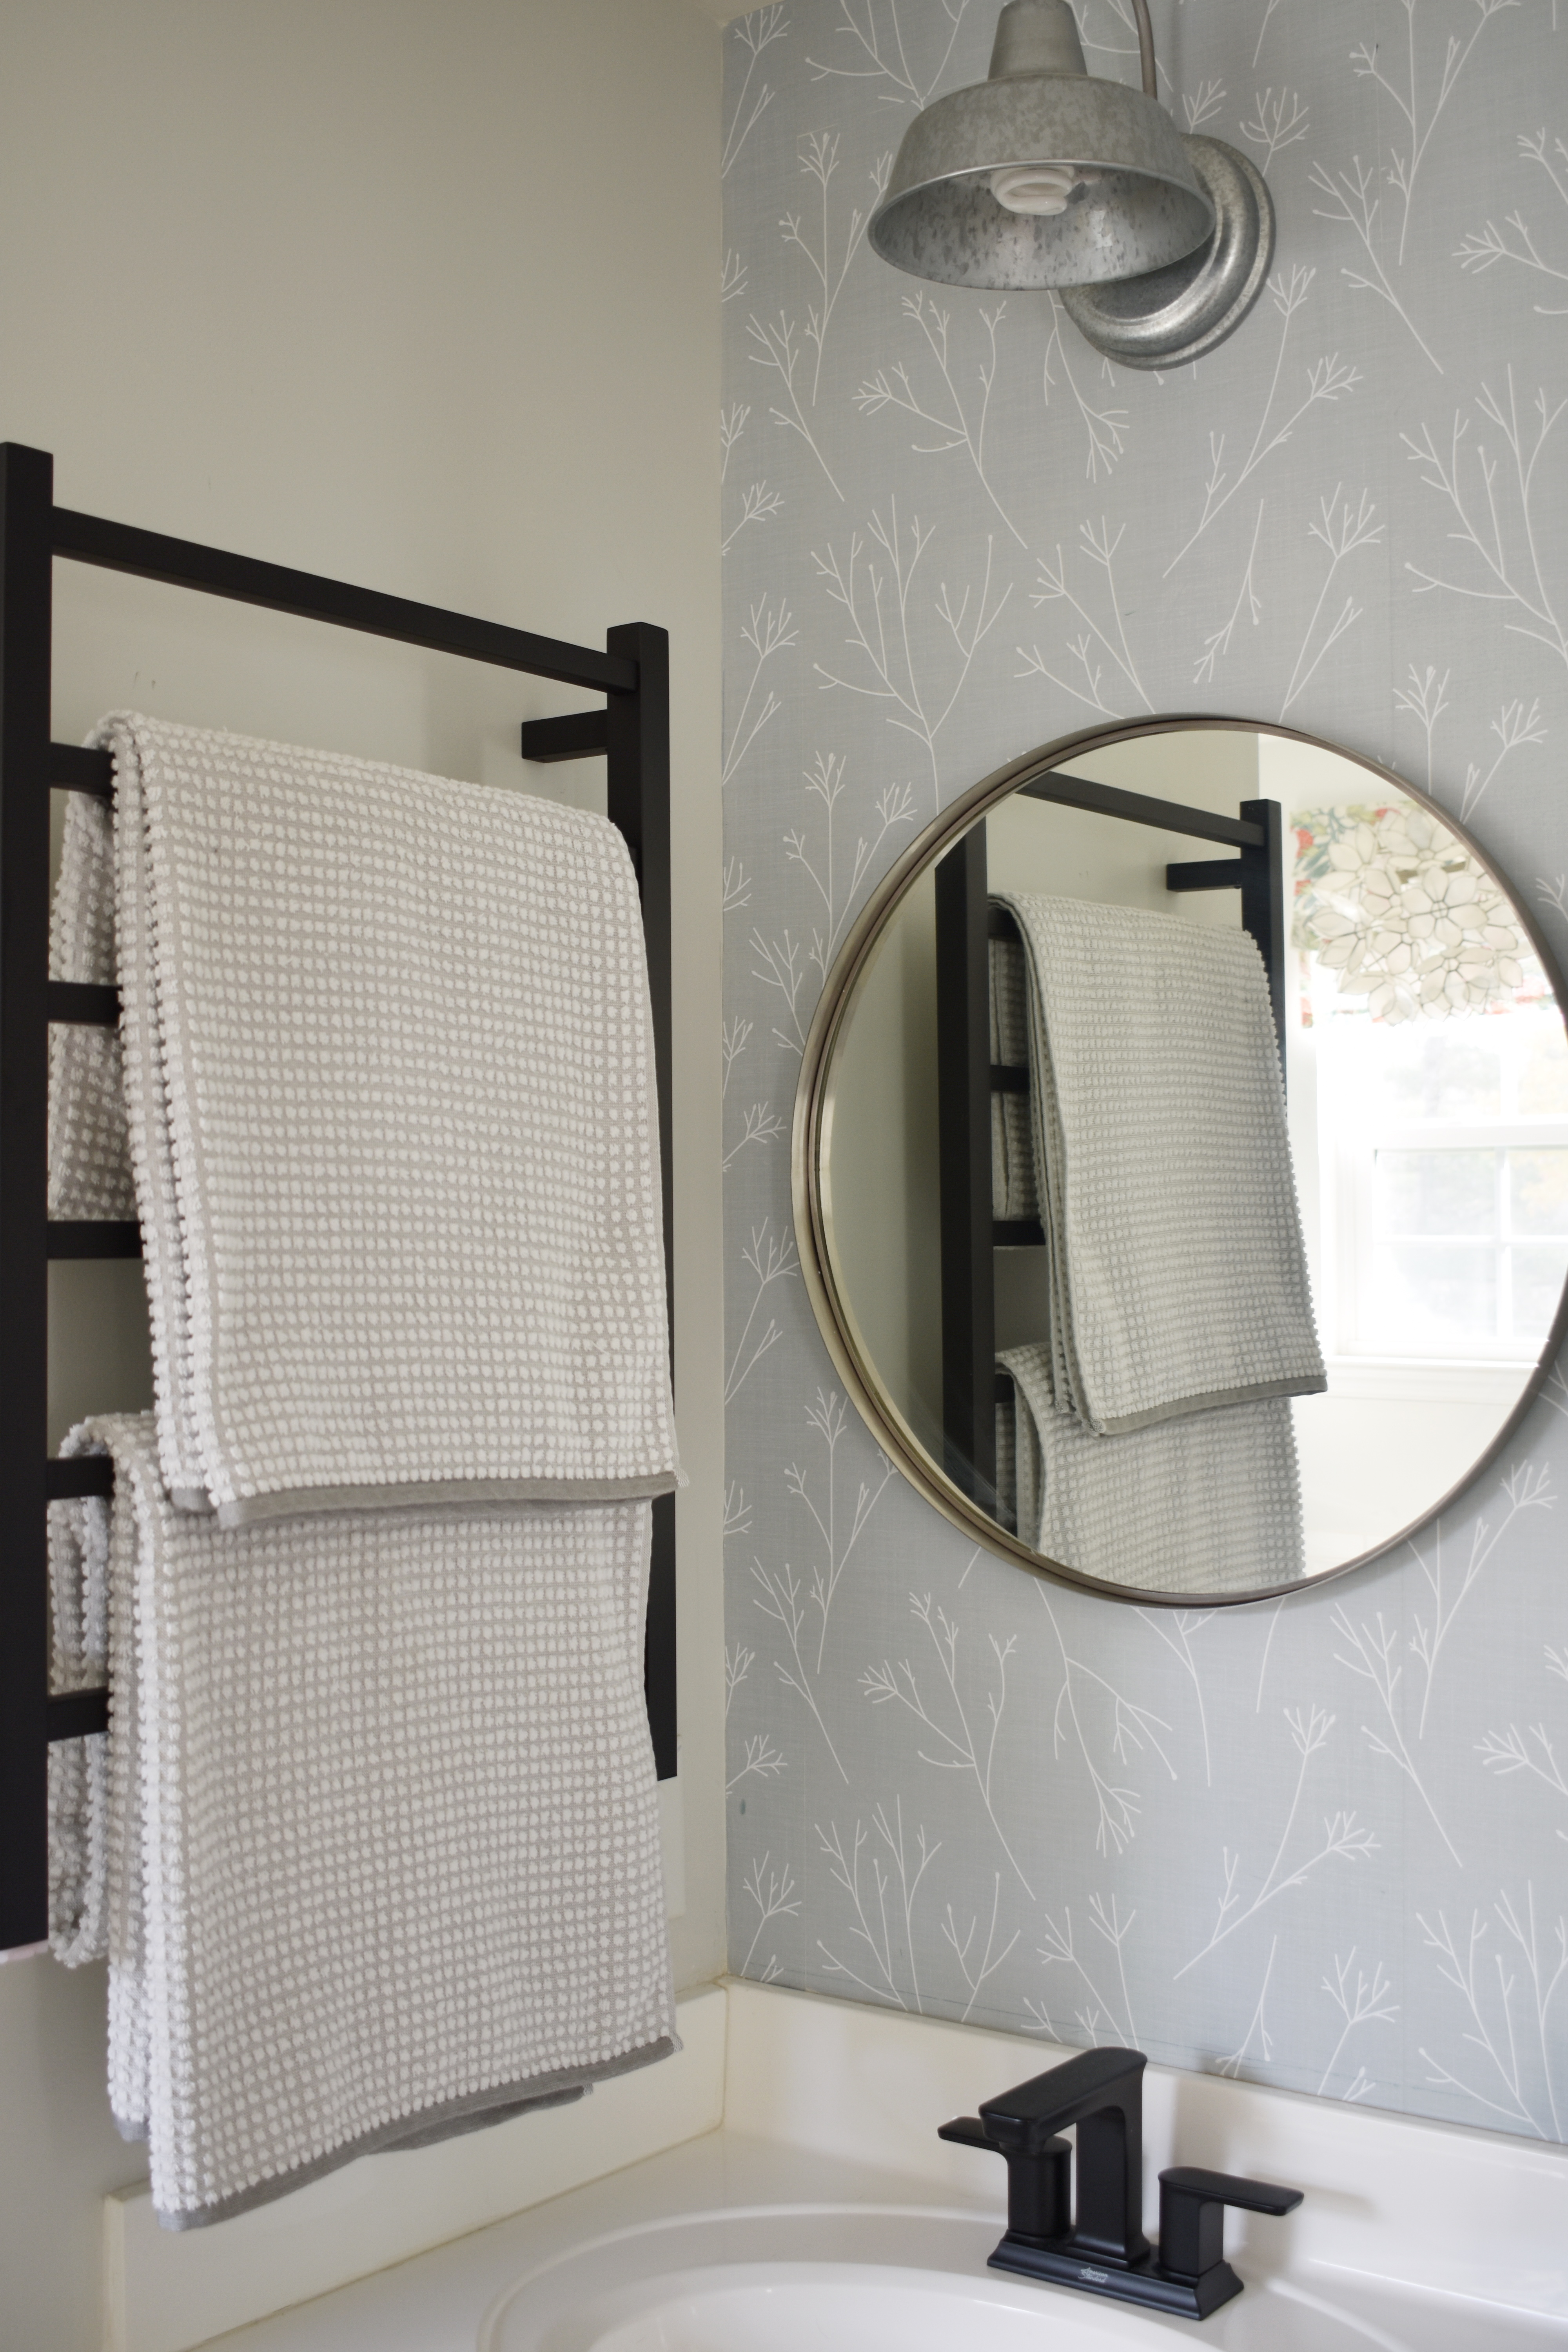 Indulging in a Mini-Master Bath-Makeover with my new Bathroom Butler Heated Towel Warmer